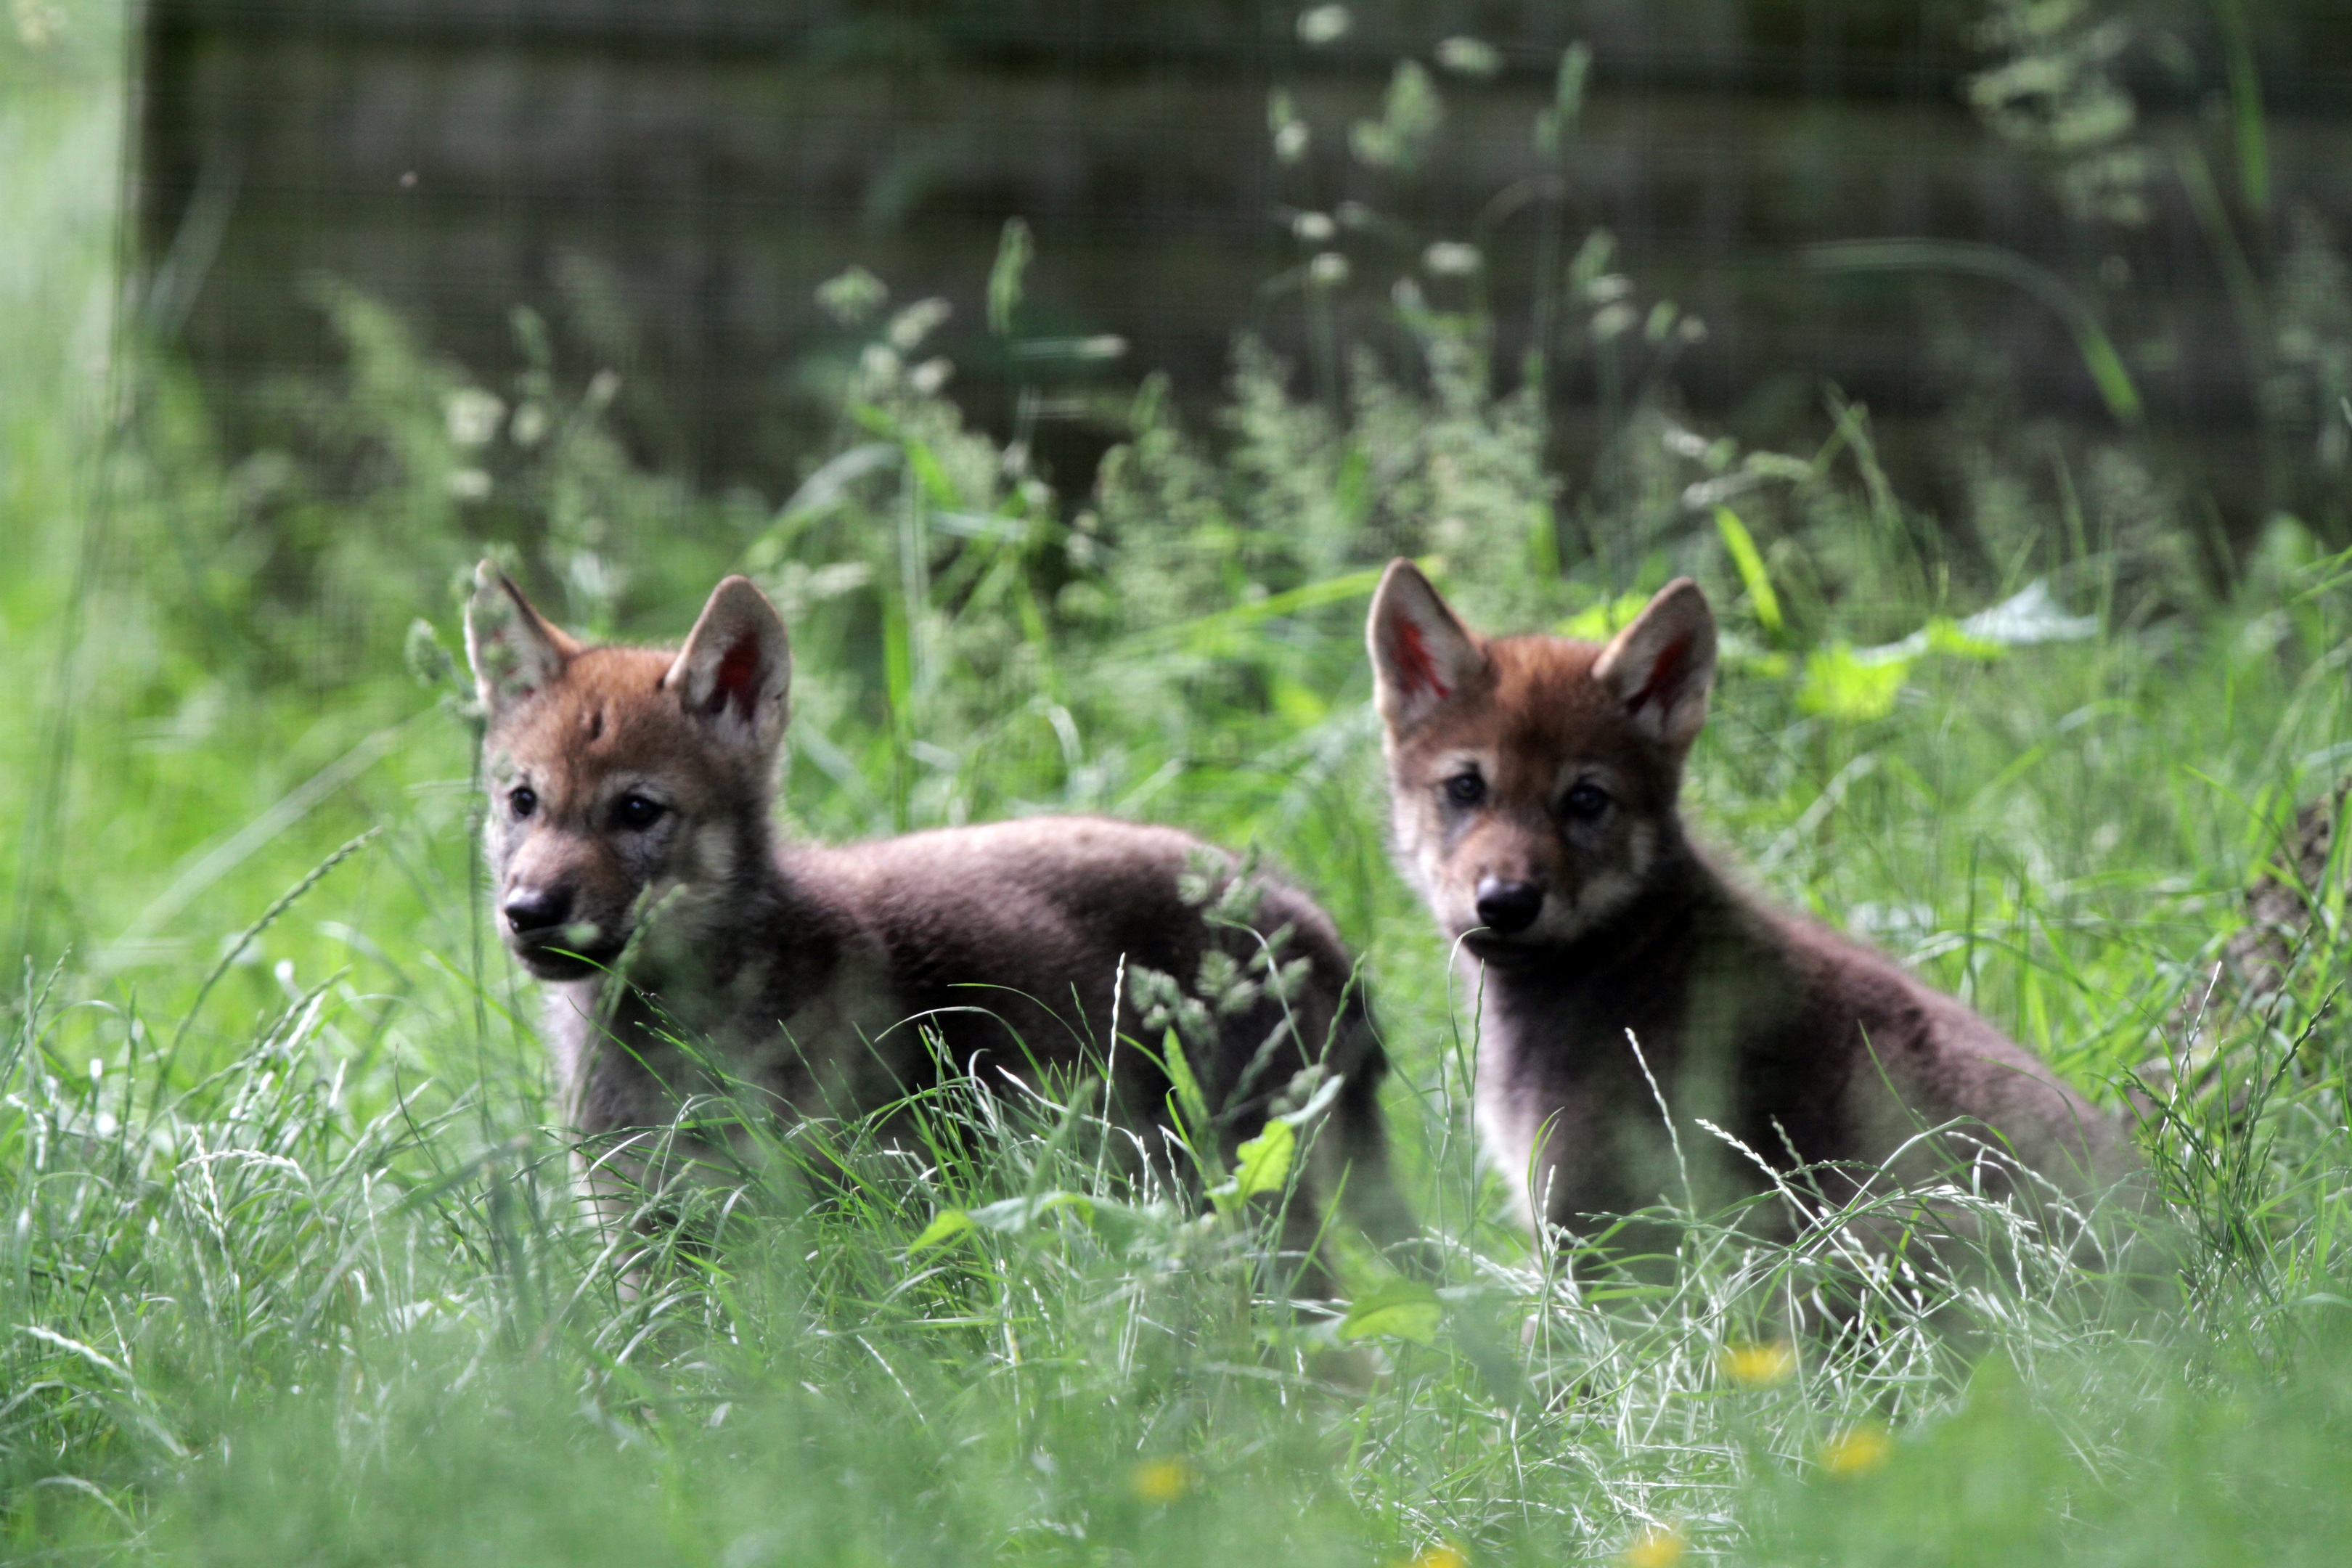 The wolf cubs in the enclosure